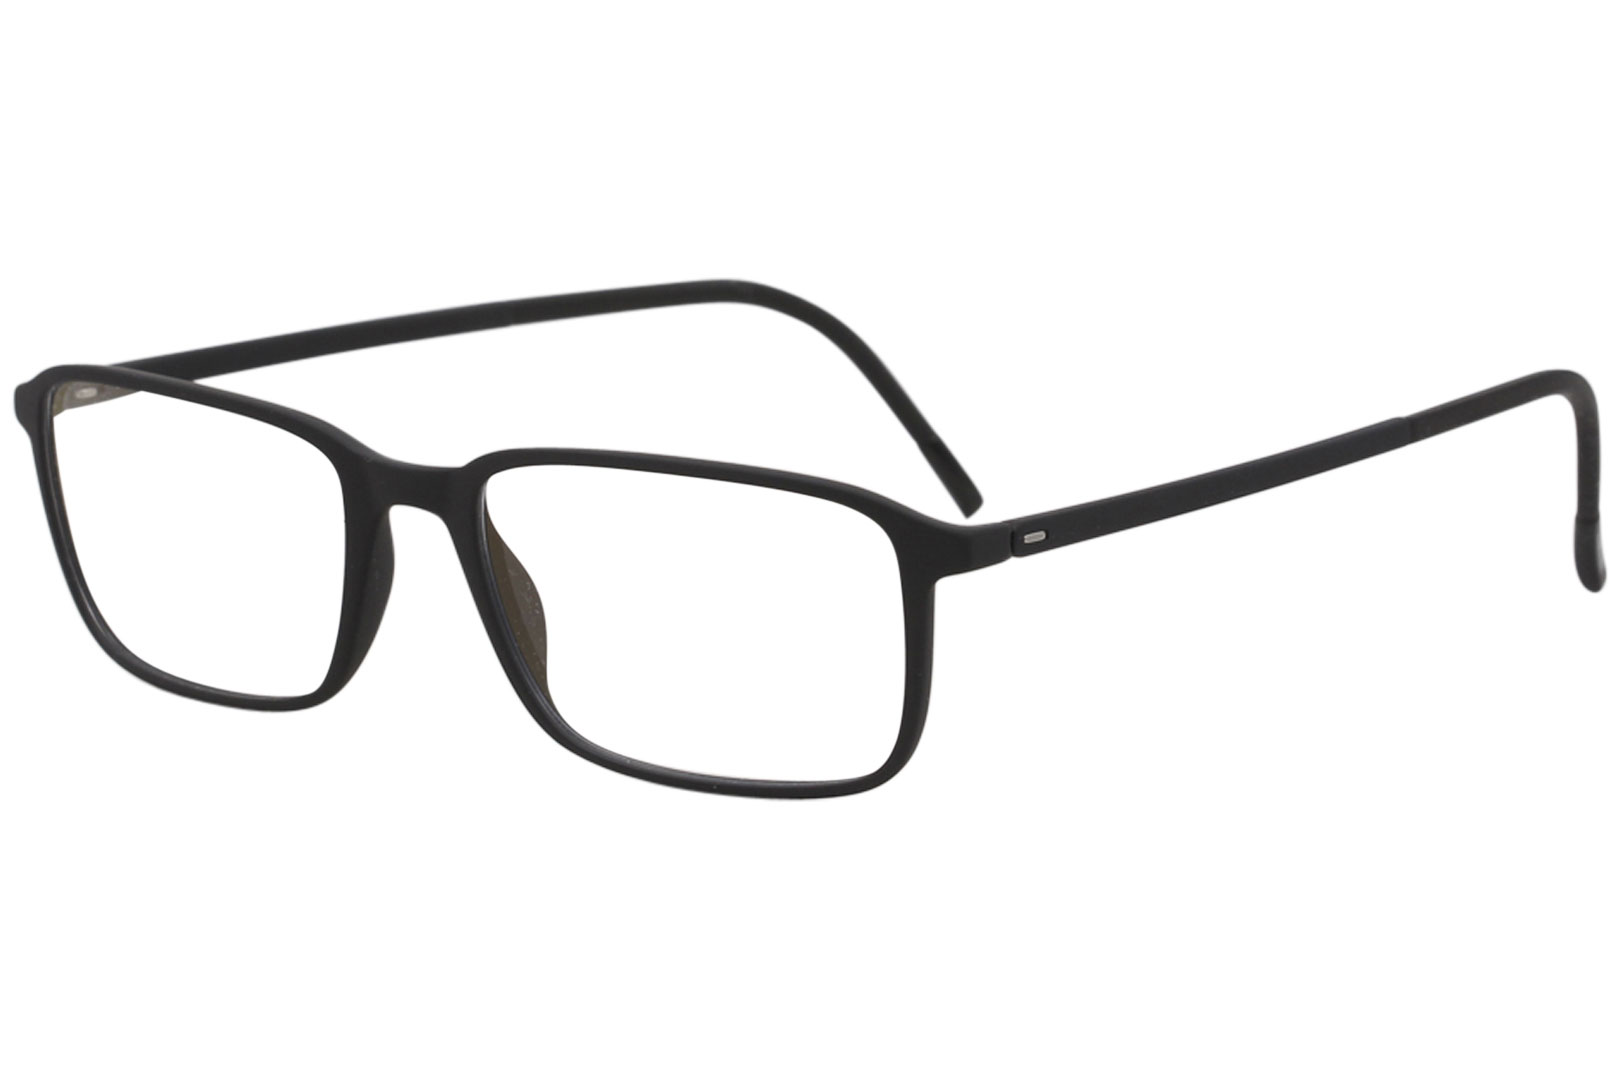 c9b47c3e299a Silhouette Men's Eyeglasses SPX Illusion 2912 Full Rim Optical Frame ...